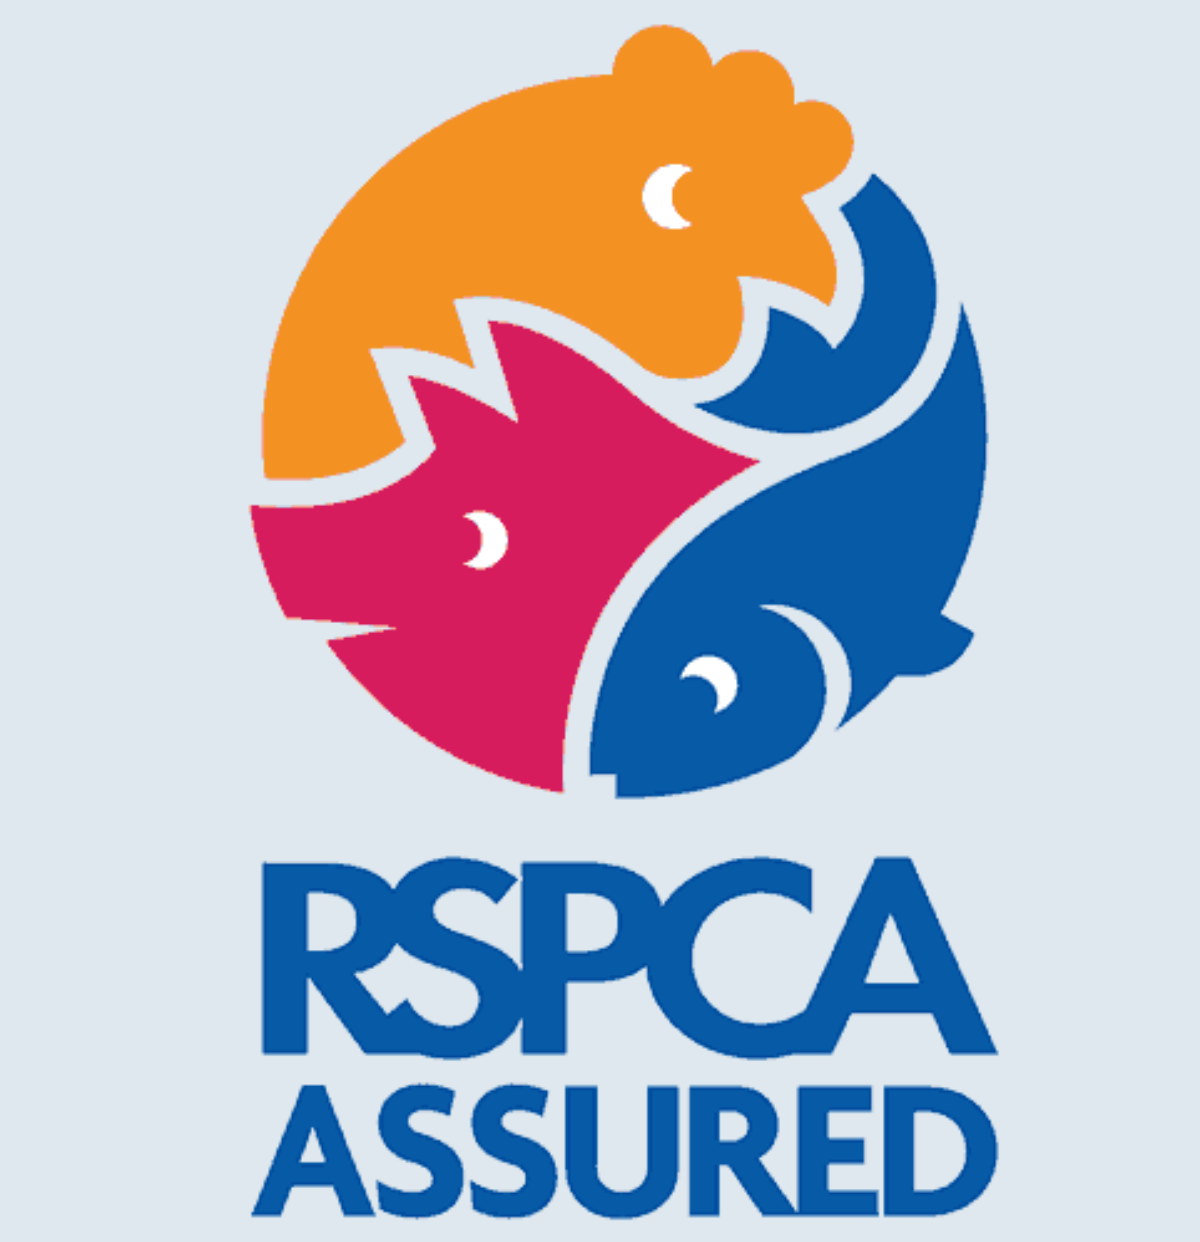 RSPCA_fixed.png